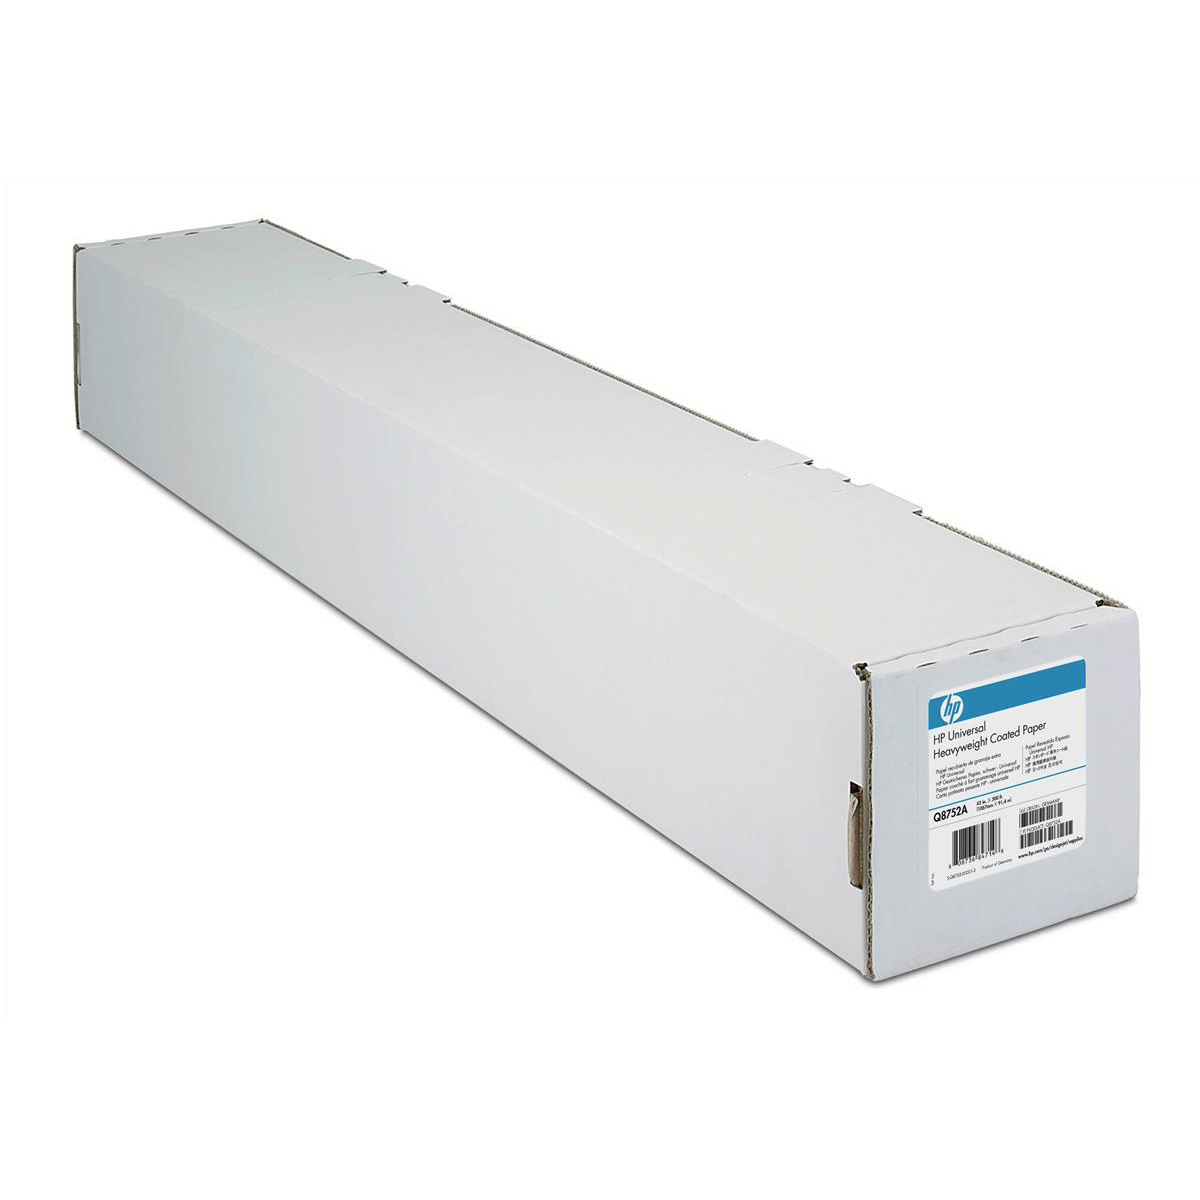 Other Sizes Hewlett Packard HP DesignJet Coated Paper 90gsm 42 inch Roll 1067mmx45.7m Ref C6567B